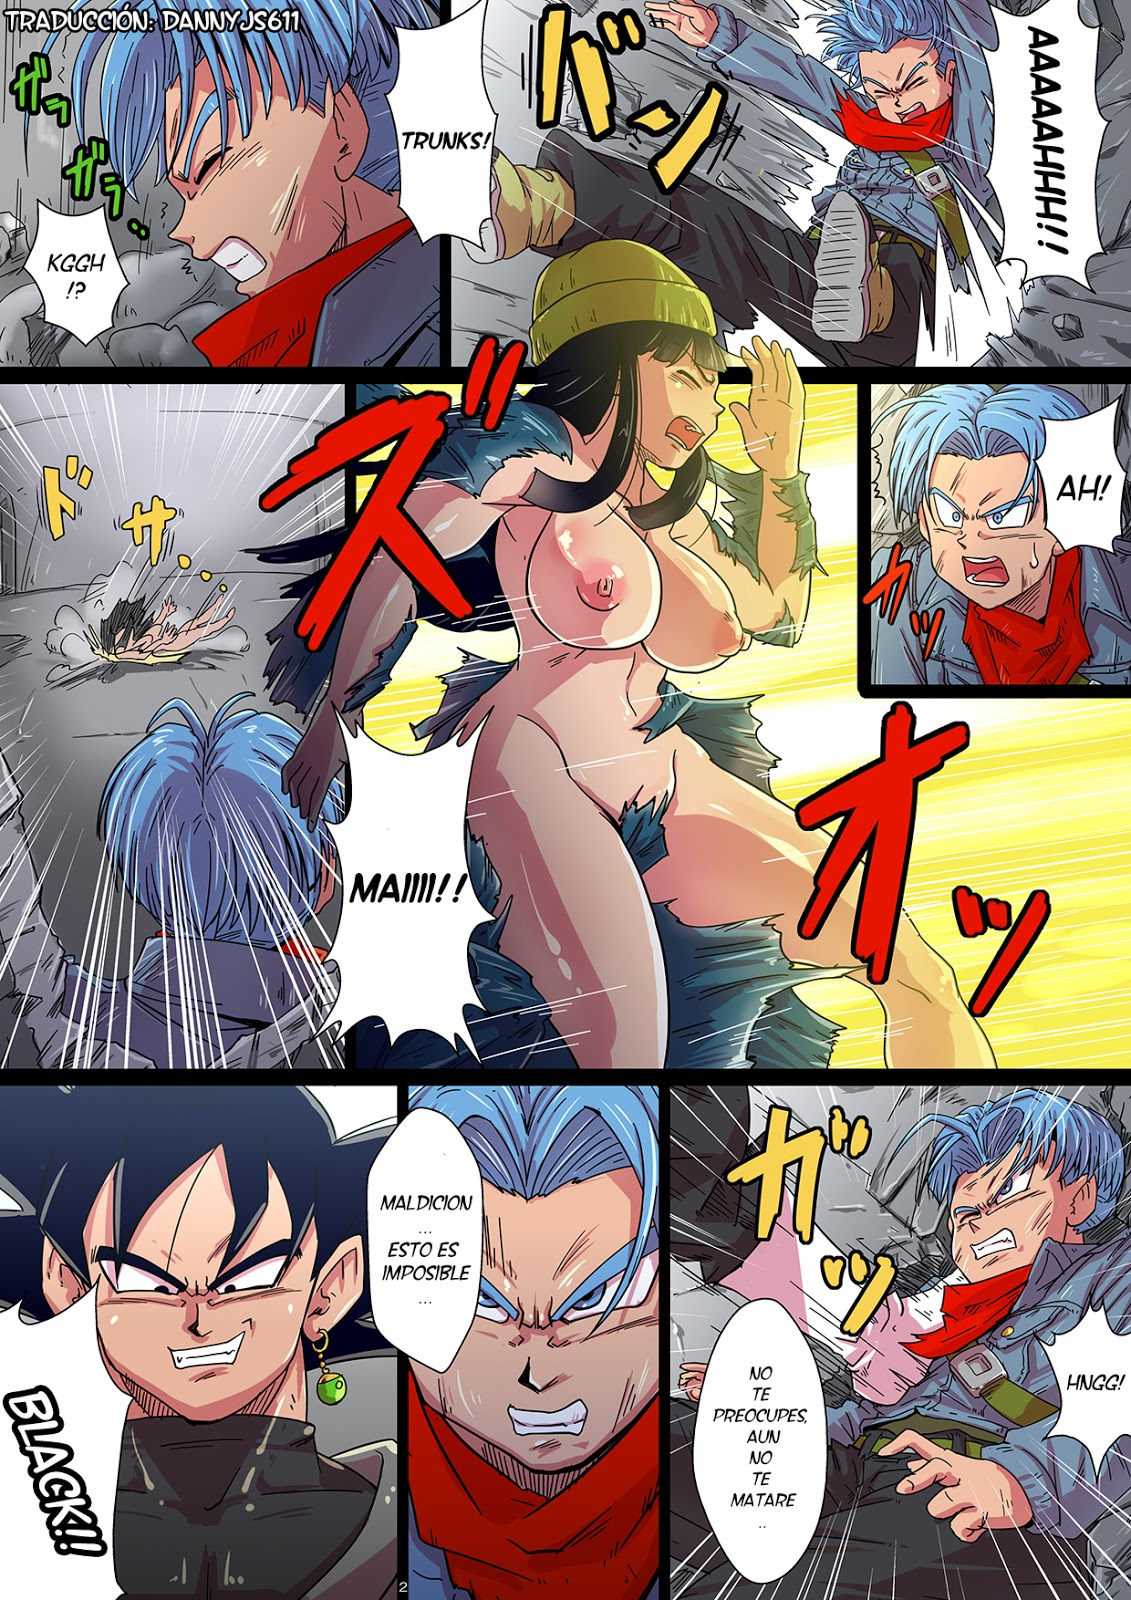 ball dragon porno comic de